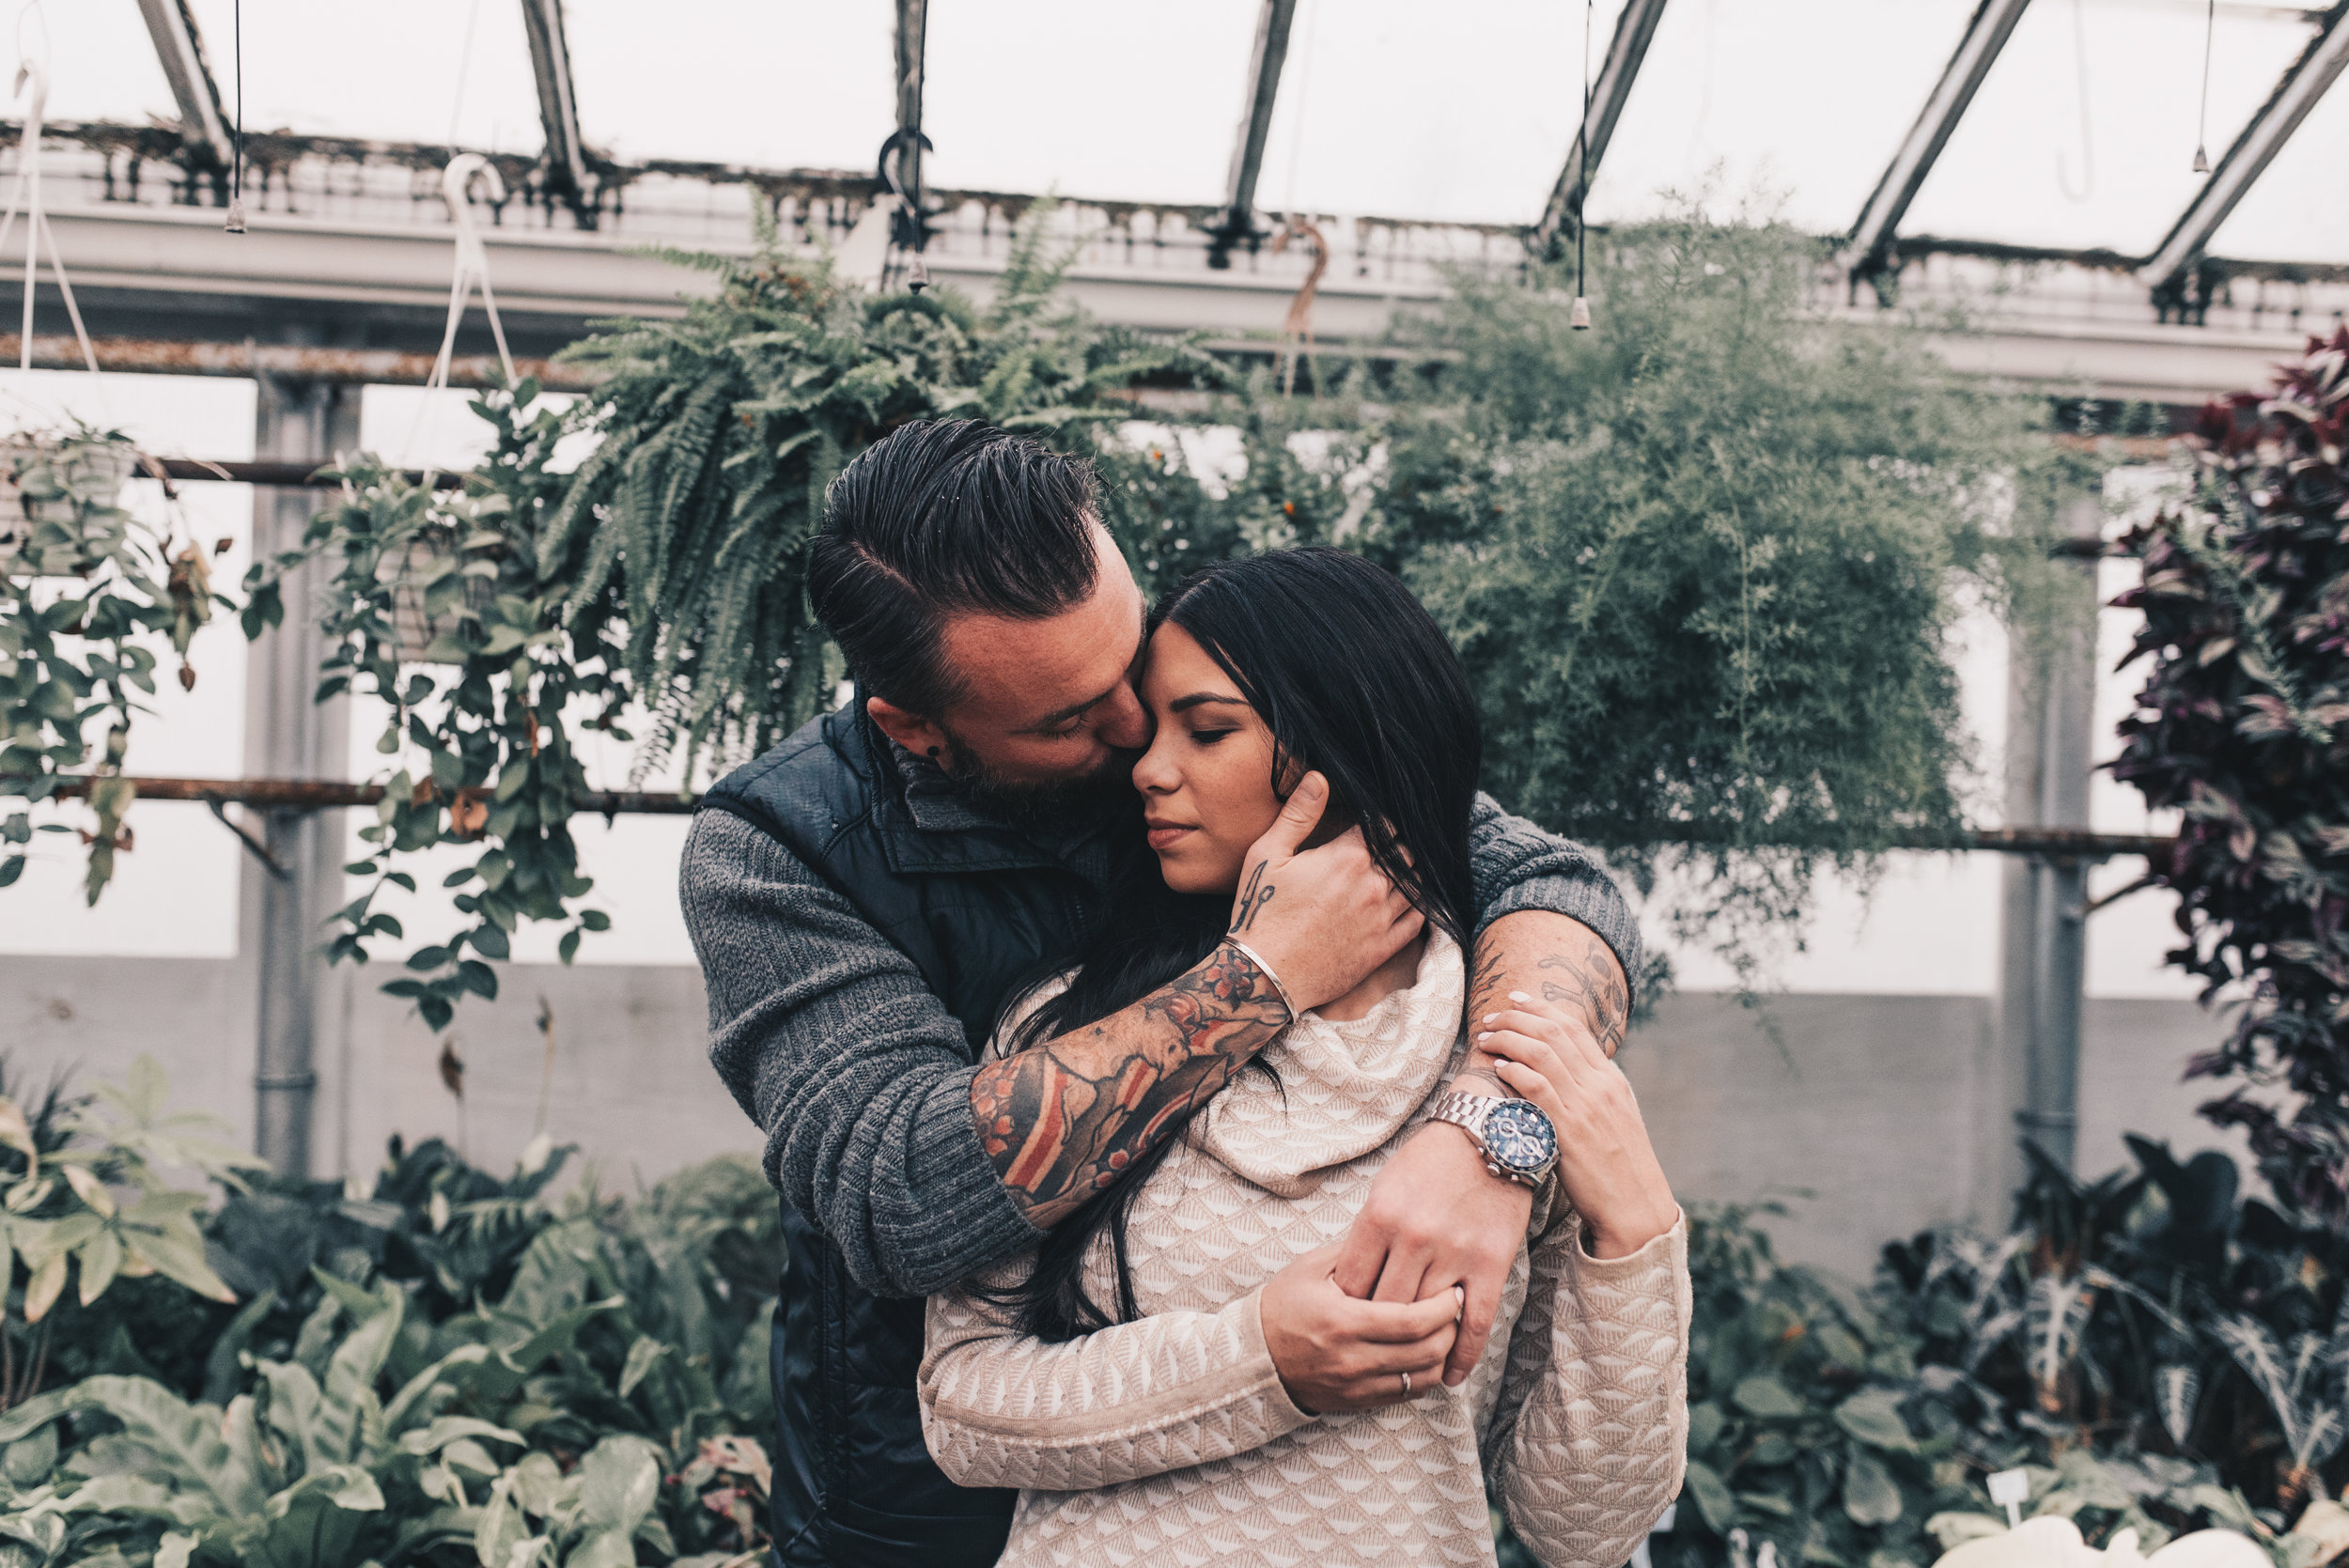 Greenhouse Couples Photography, Greenhouse Engagement Photography, Illinois Photographer